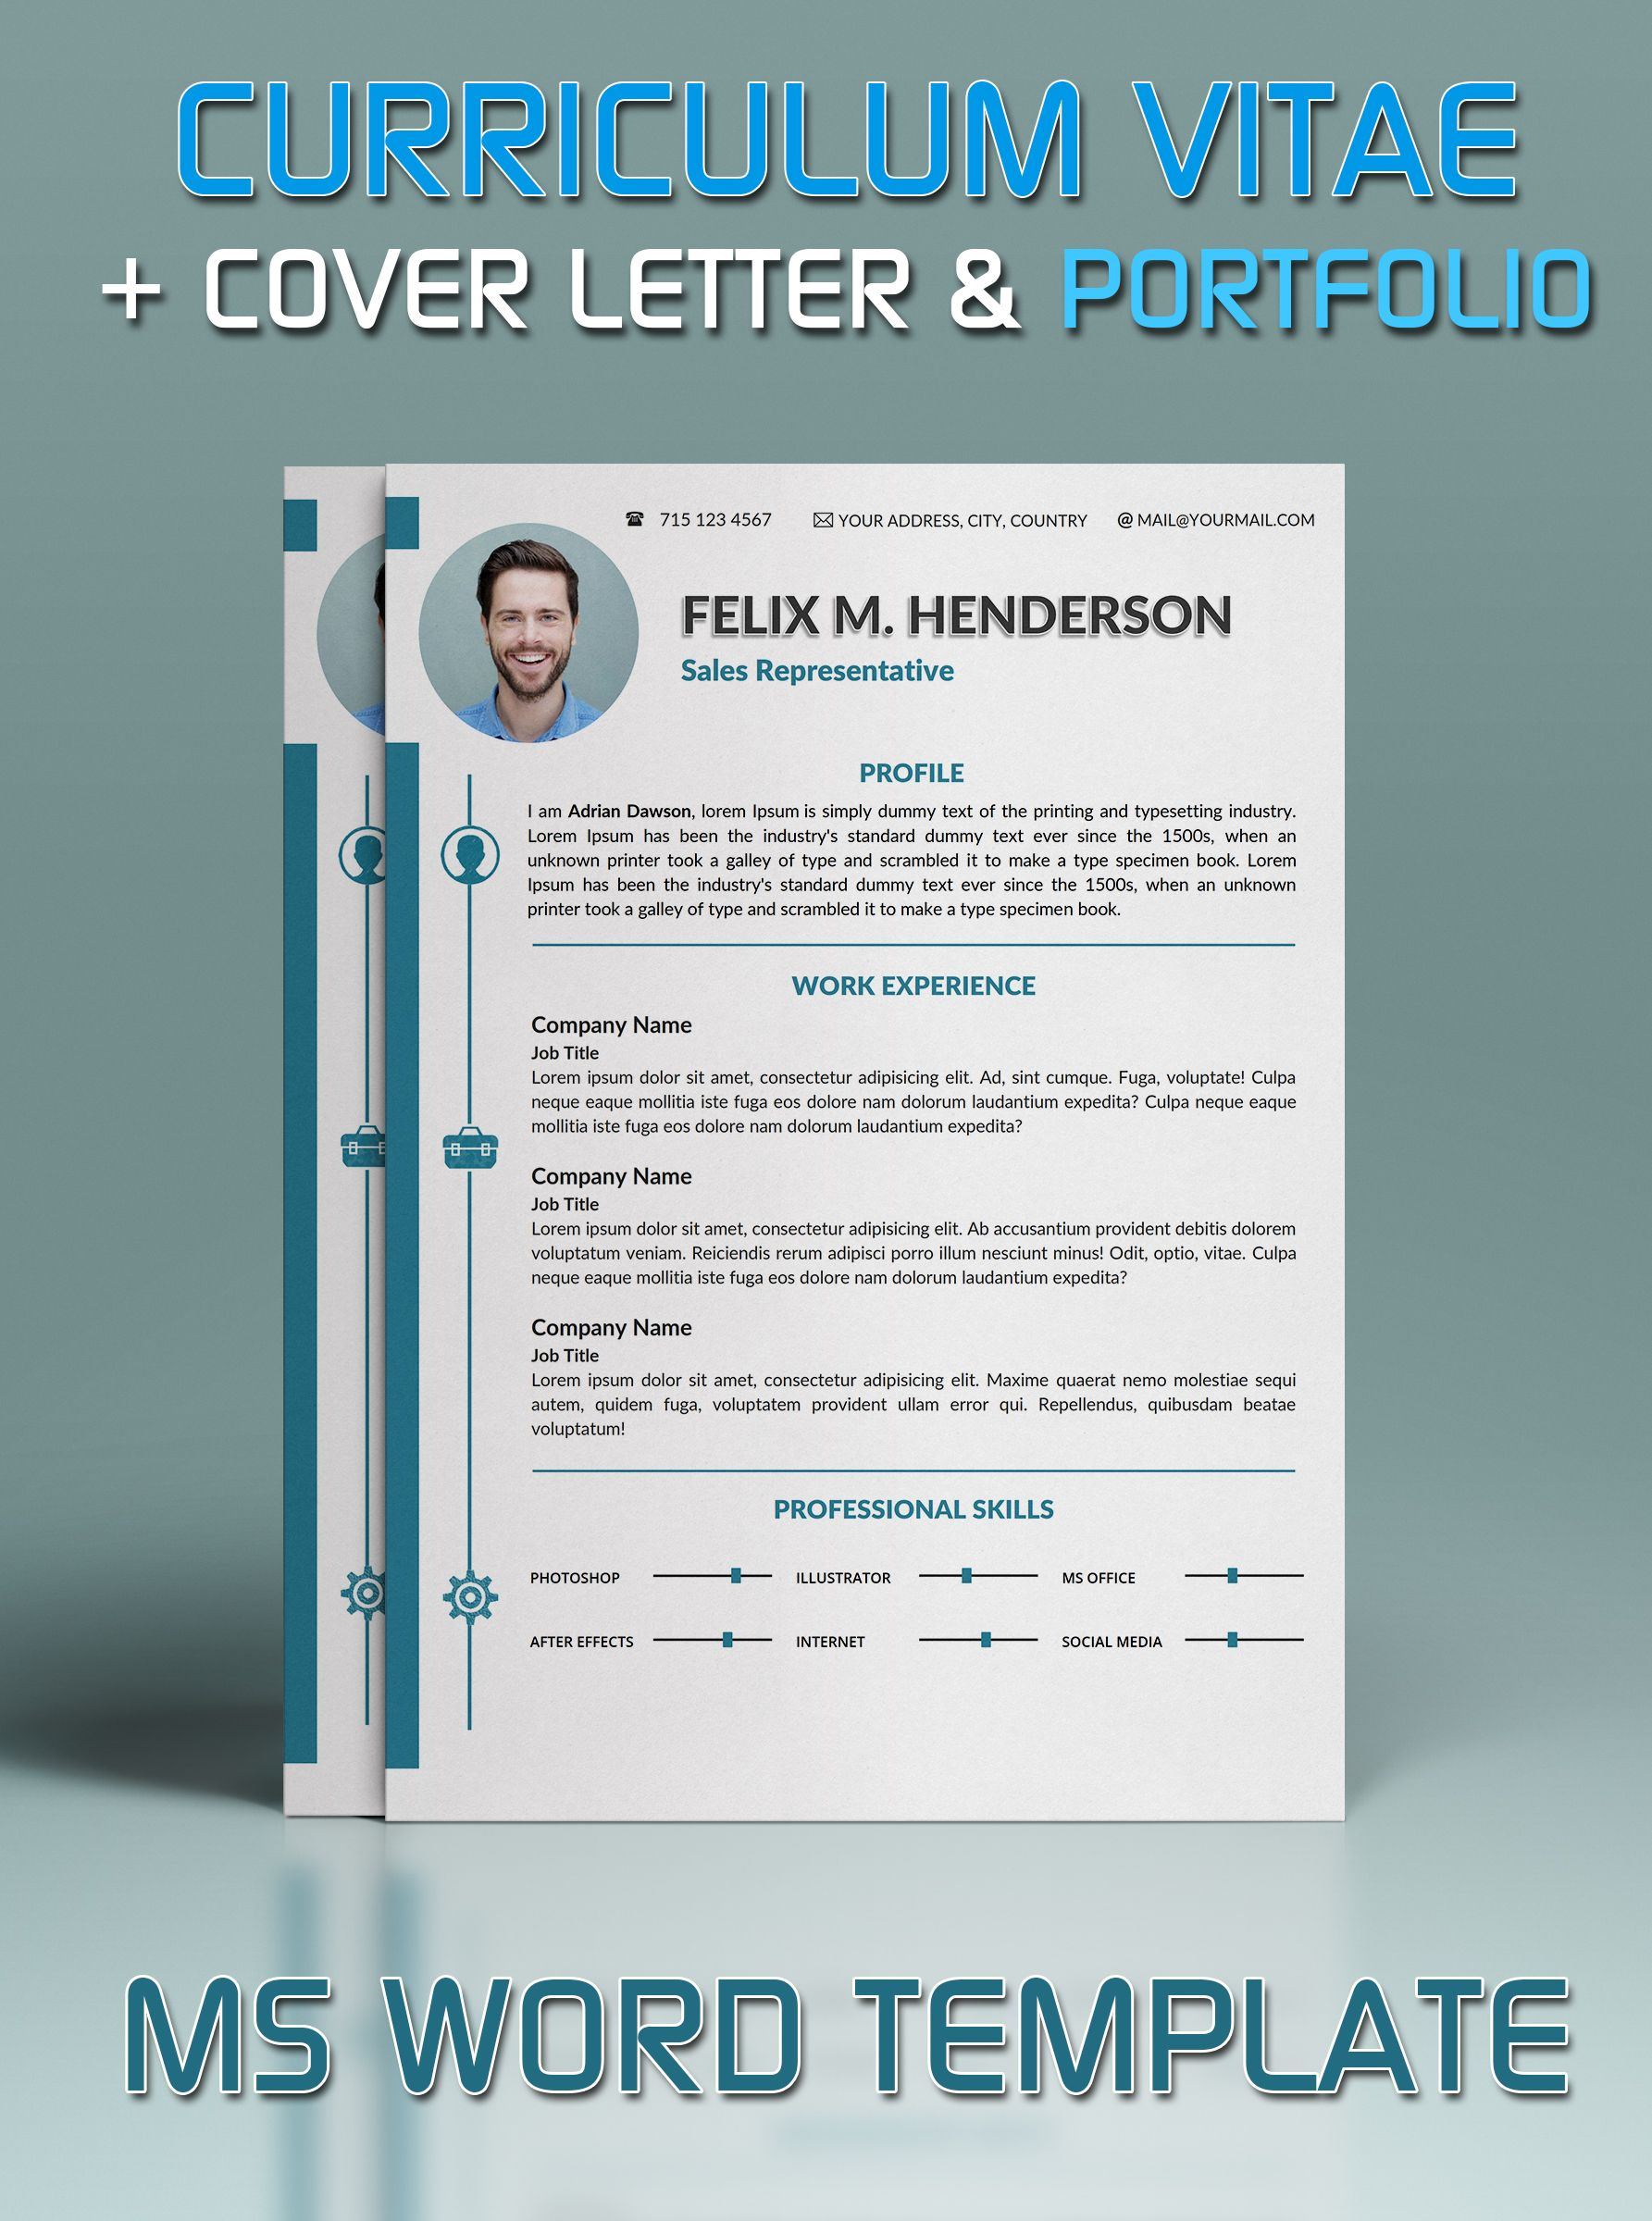 Resume Template In Microsoft Word, Cover Letter And Portfolio Template  Portfolio Word Template